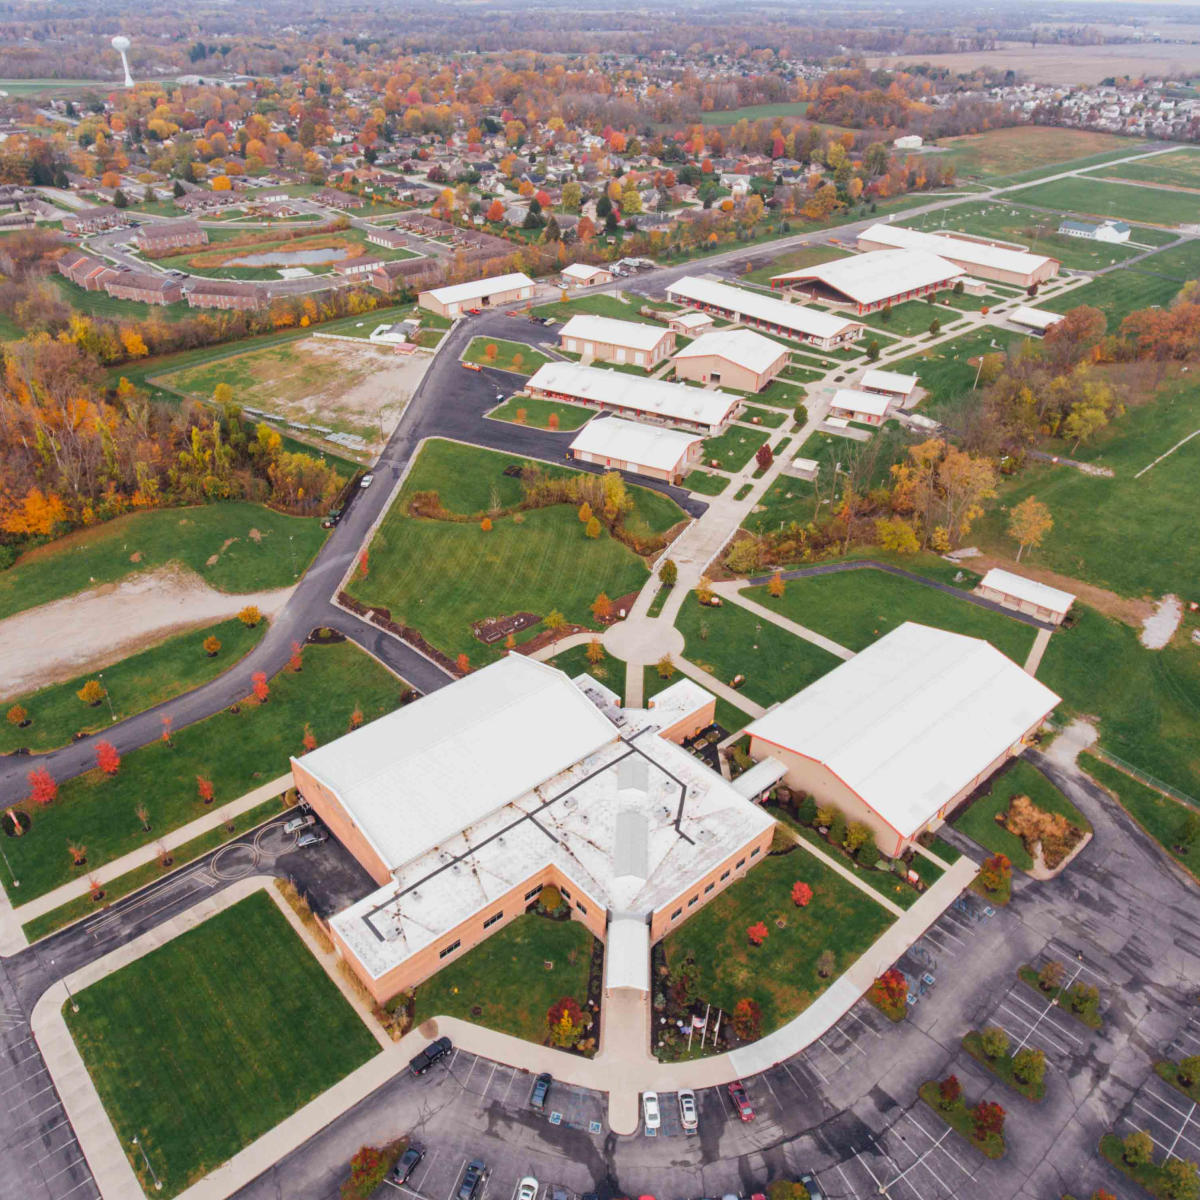 square Copy of Hendricks County 4-H Fairgrounds & Conference Complex aerial view